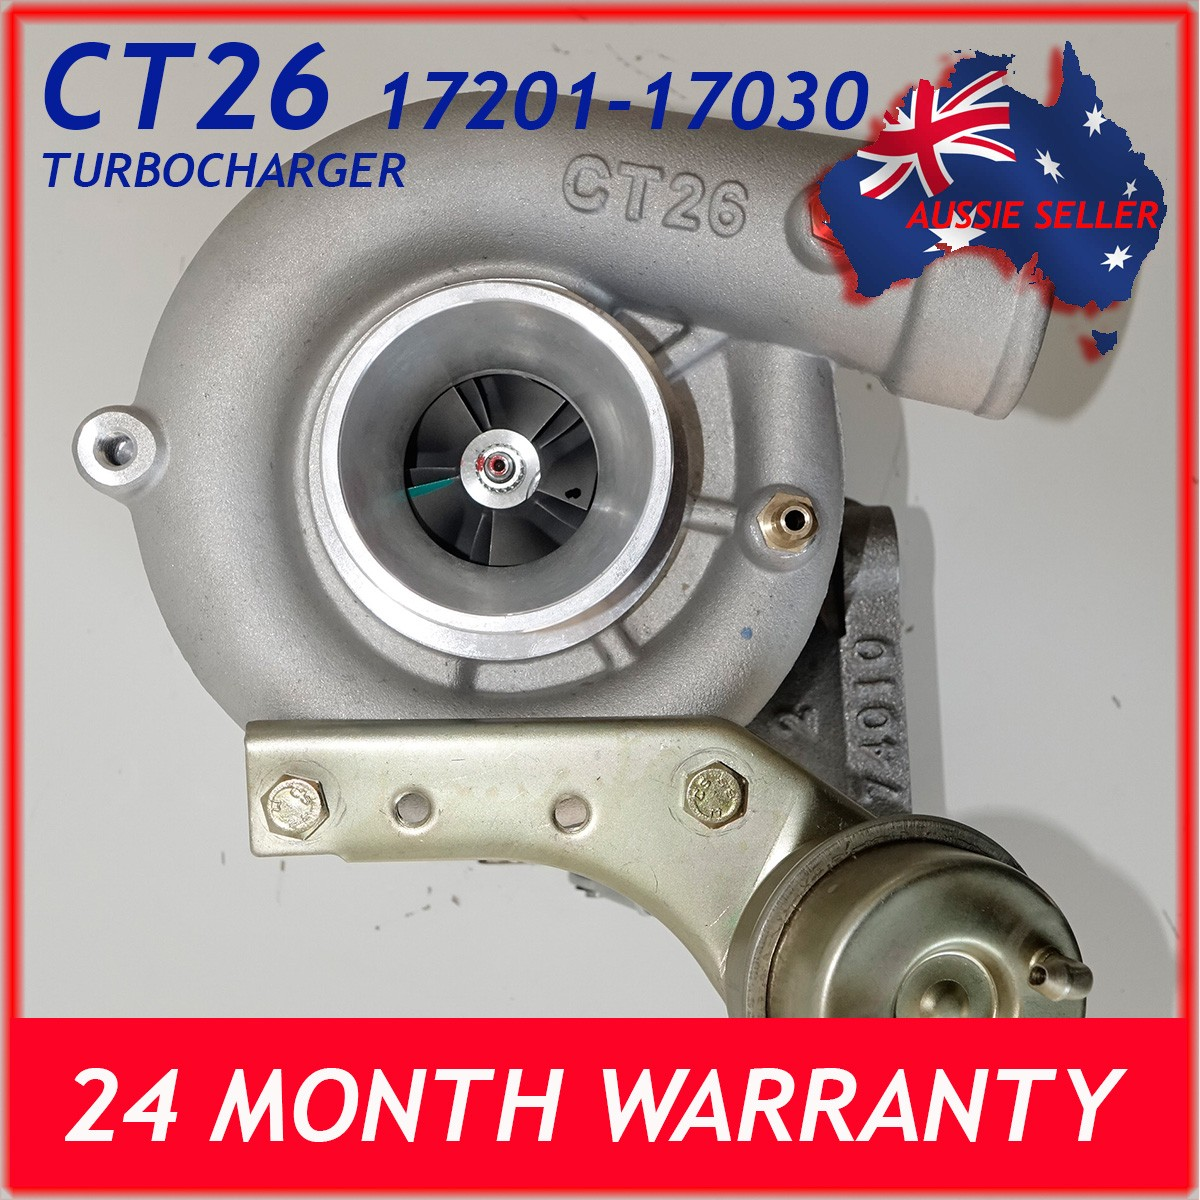 toyota-turbocharger-17201-17030-compressor-main1